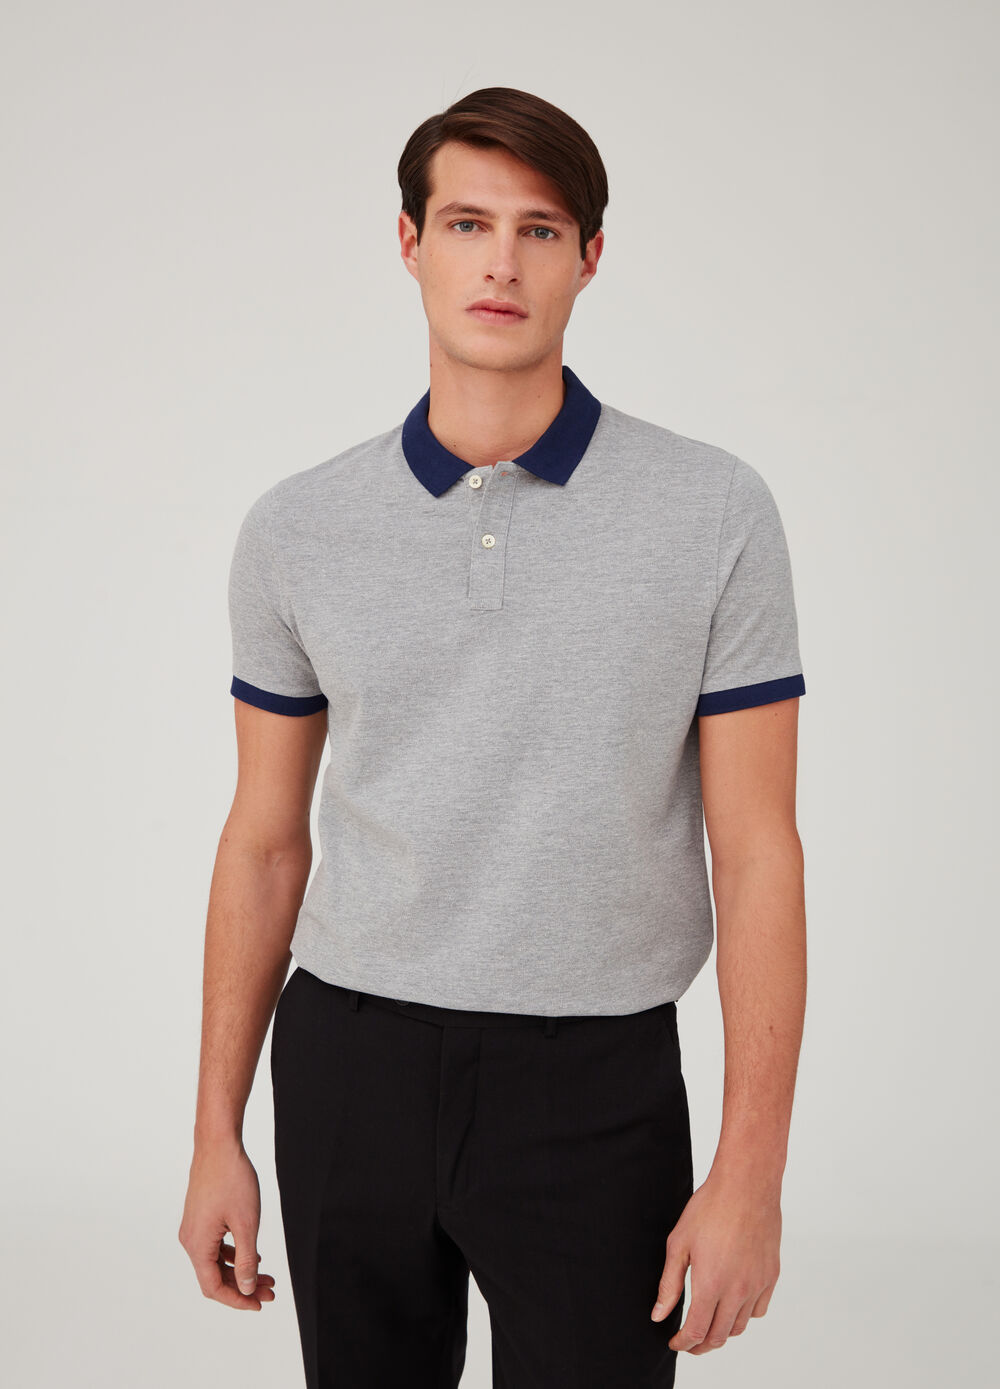 Stretch mélange piquet polo shirt with ribbing